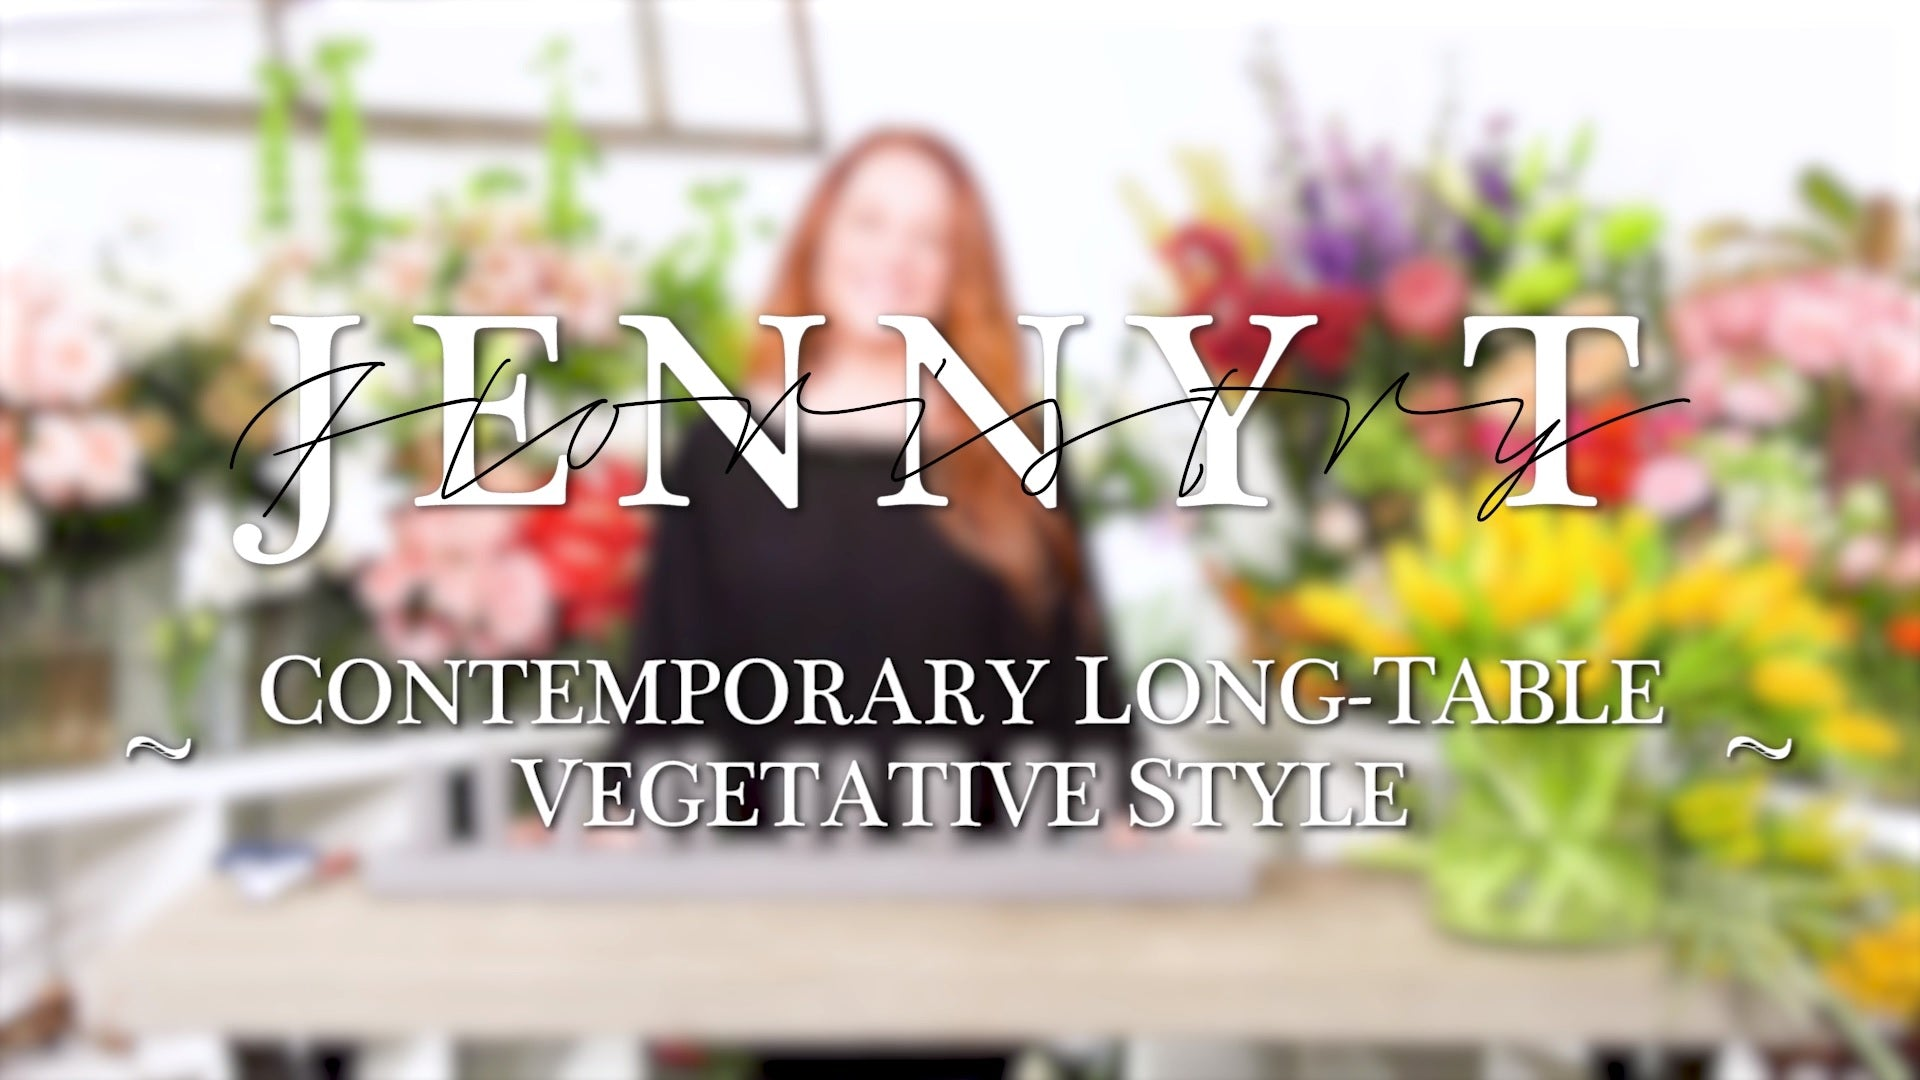 Contemporary Long-Table Vegetative Style